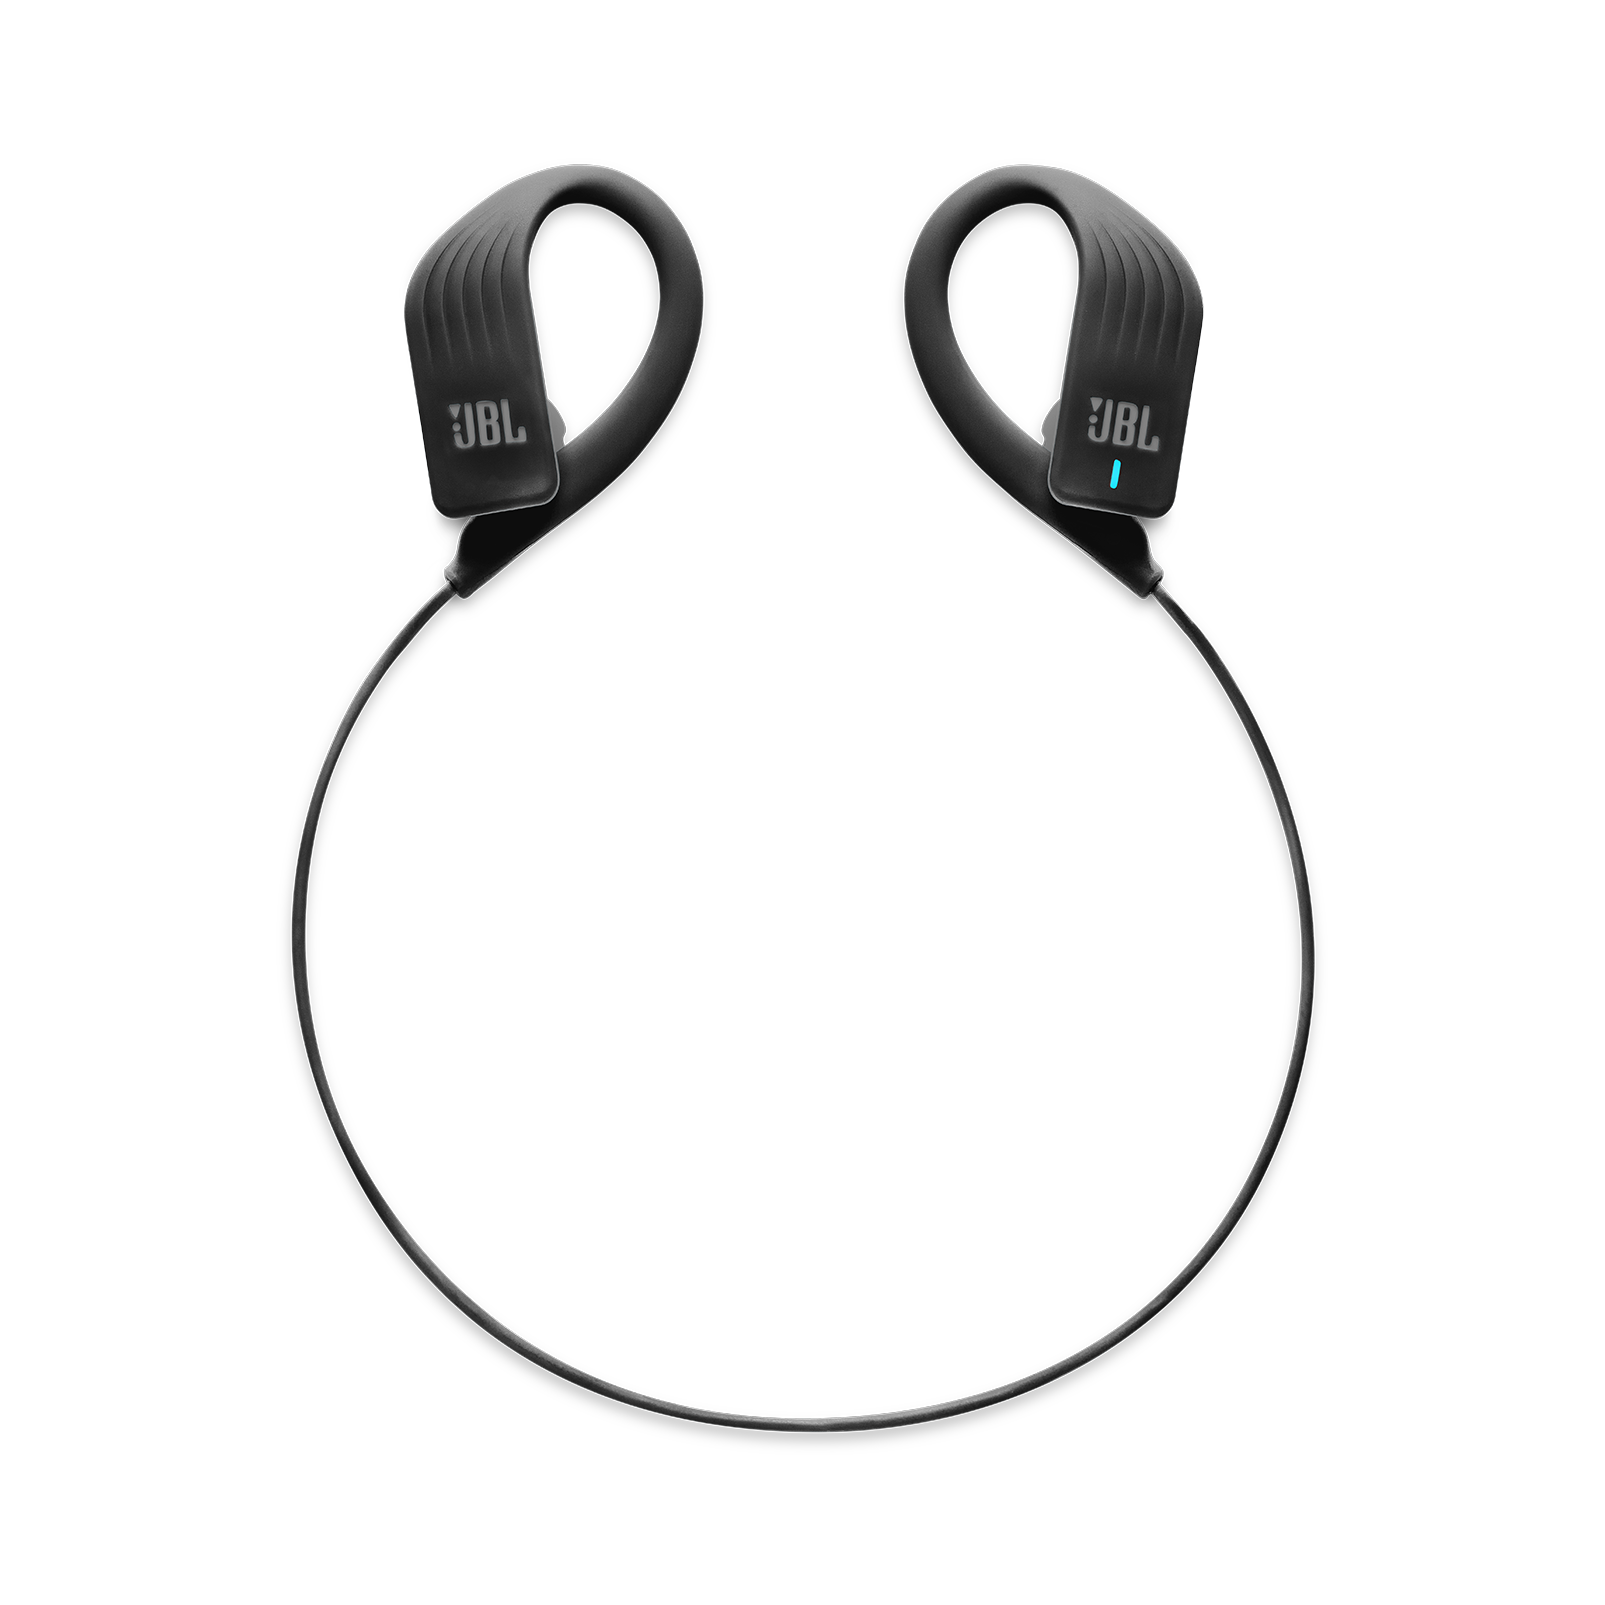 JBL Endurance SPRINT - Black - Waterproof Wireless In-Ear Sport Headphones - Detailshot 2